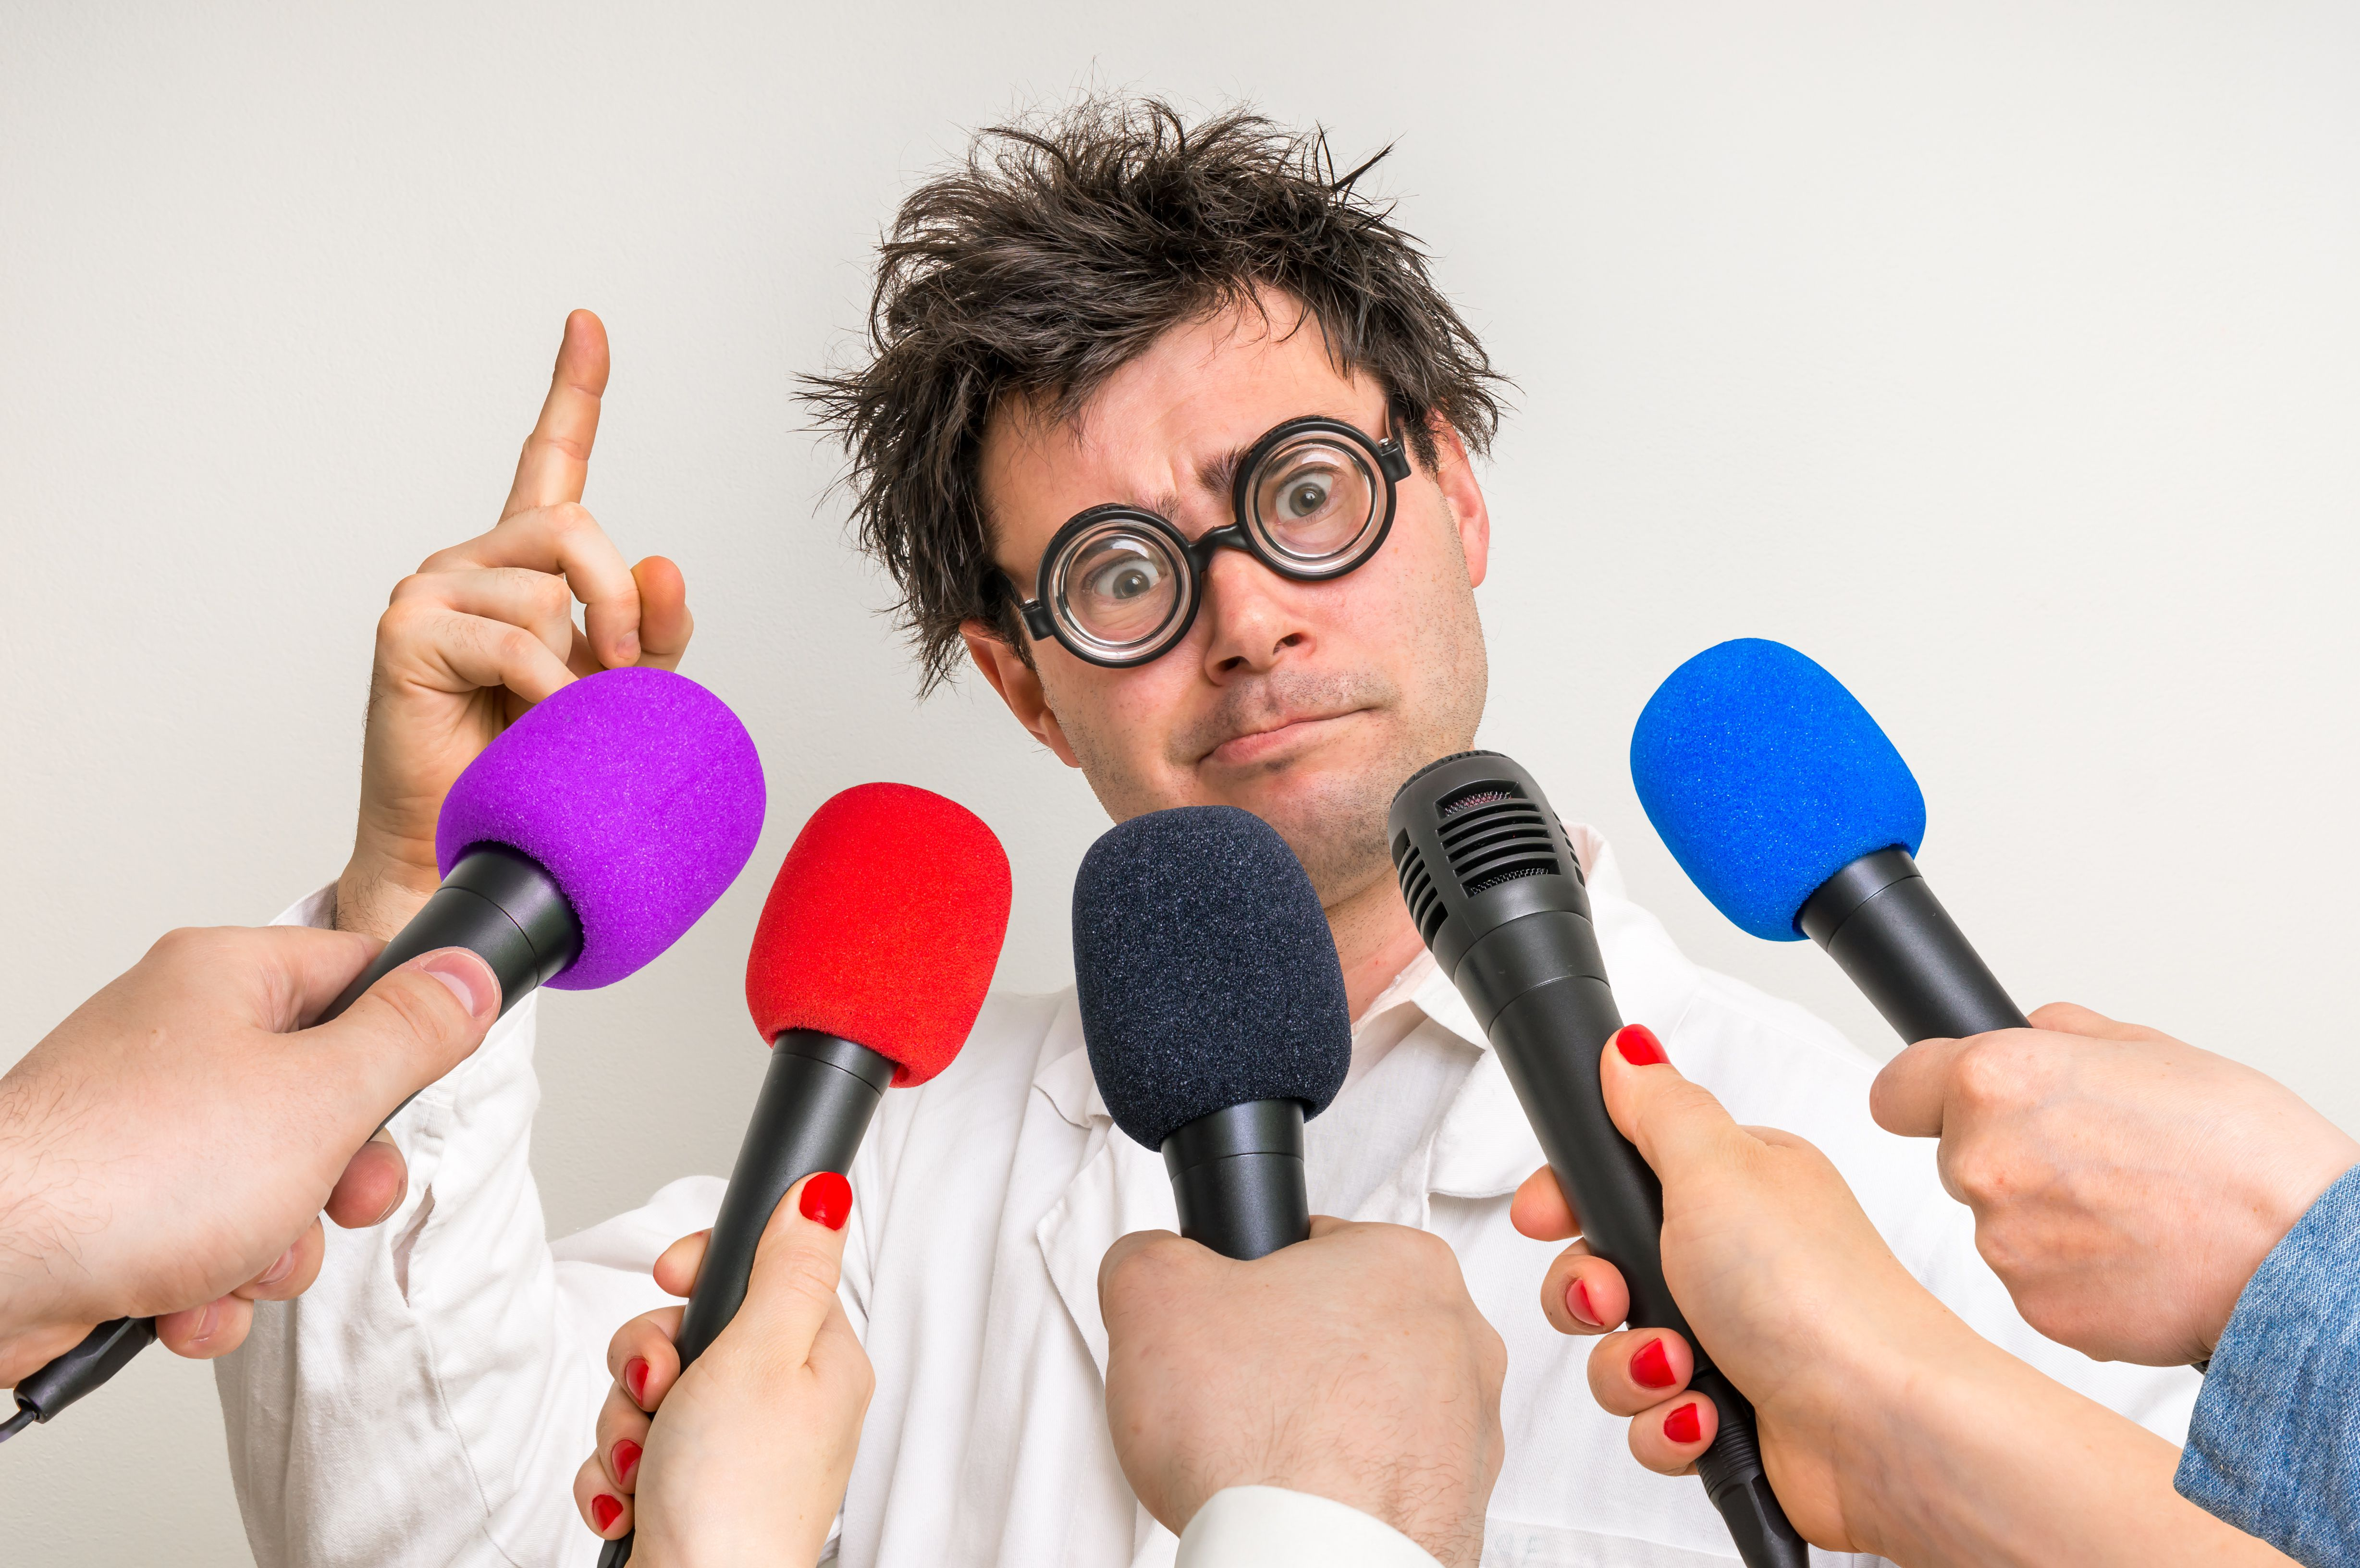 Reporters making interview with funny scientist